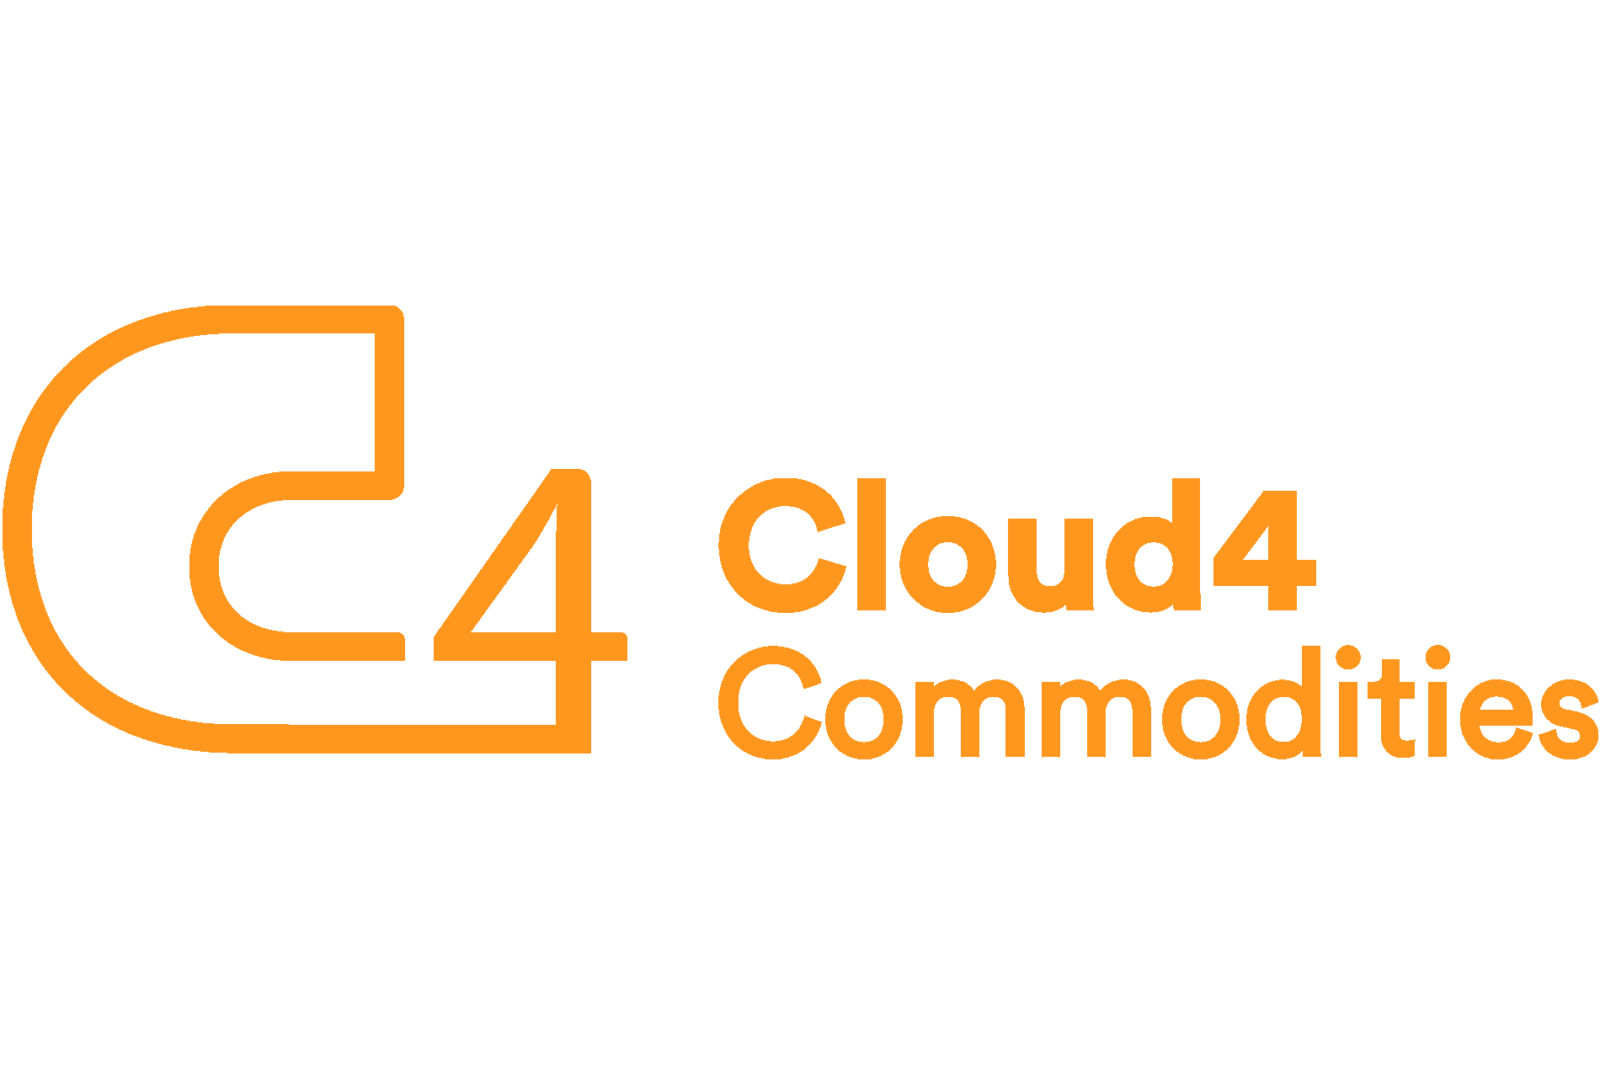 Cloud4Commodities